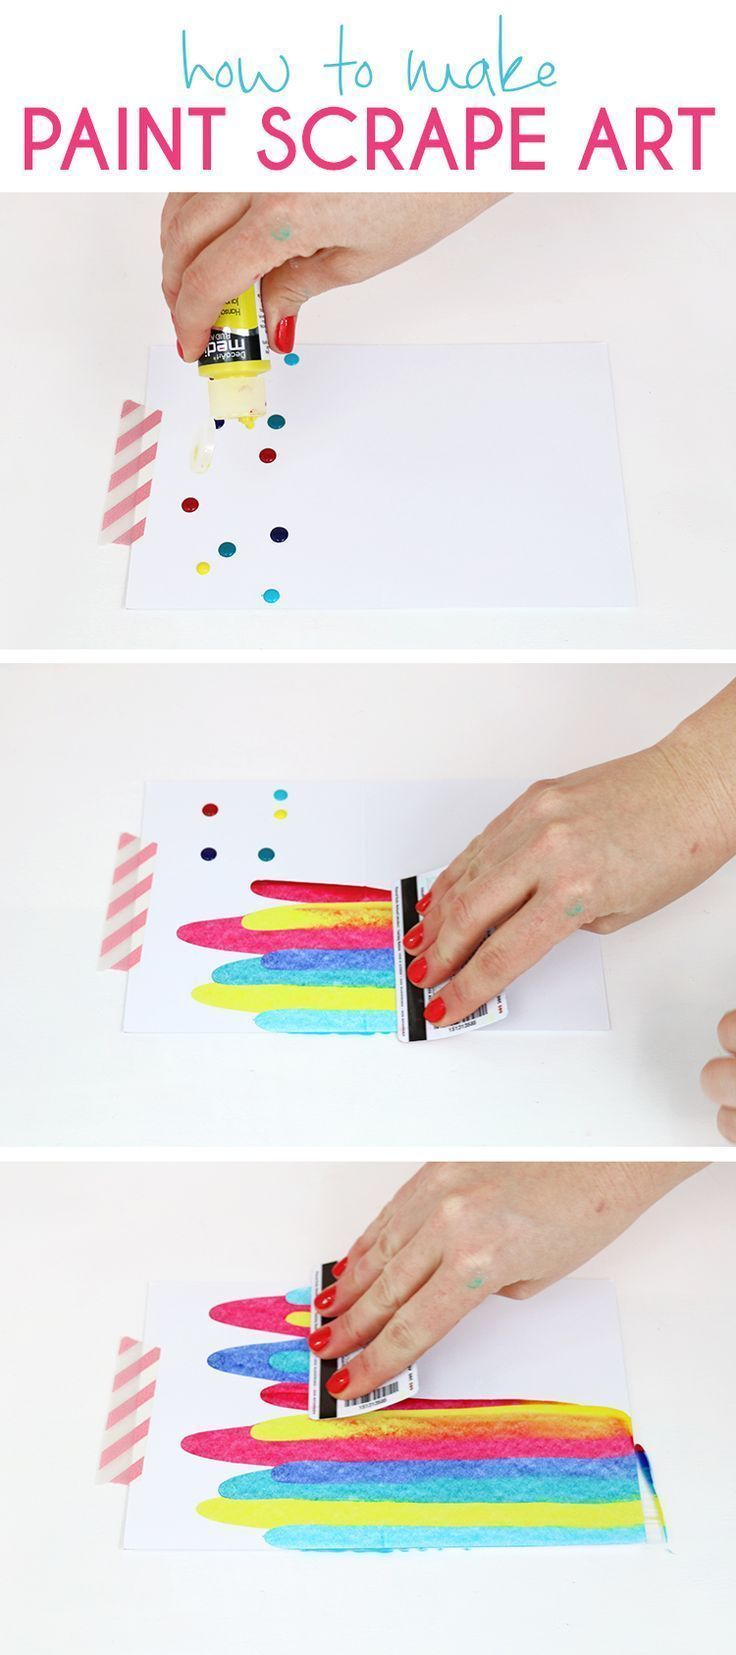 How To Make Paint Scrape Art Notecards Fun And Simple DIY Project Idea For Kids